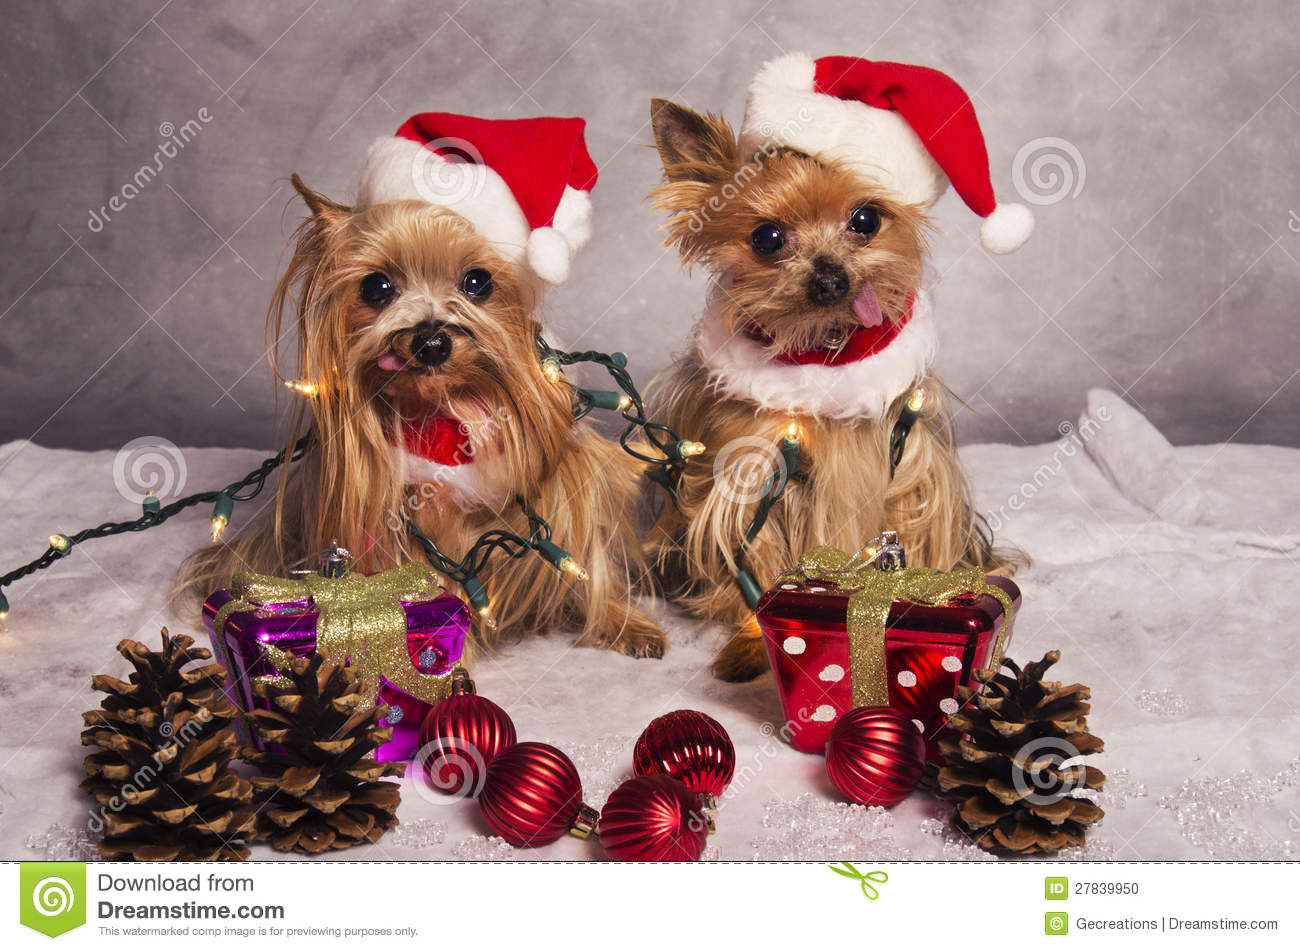 Crabots De Chien Terrier De Yorkshire De Nol Photo Stock